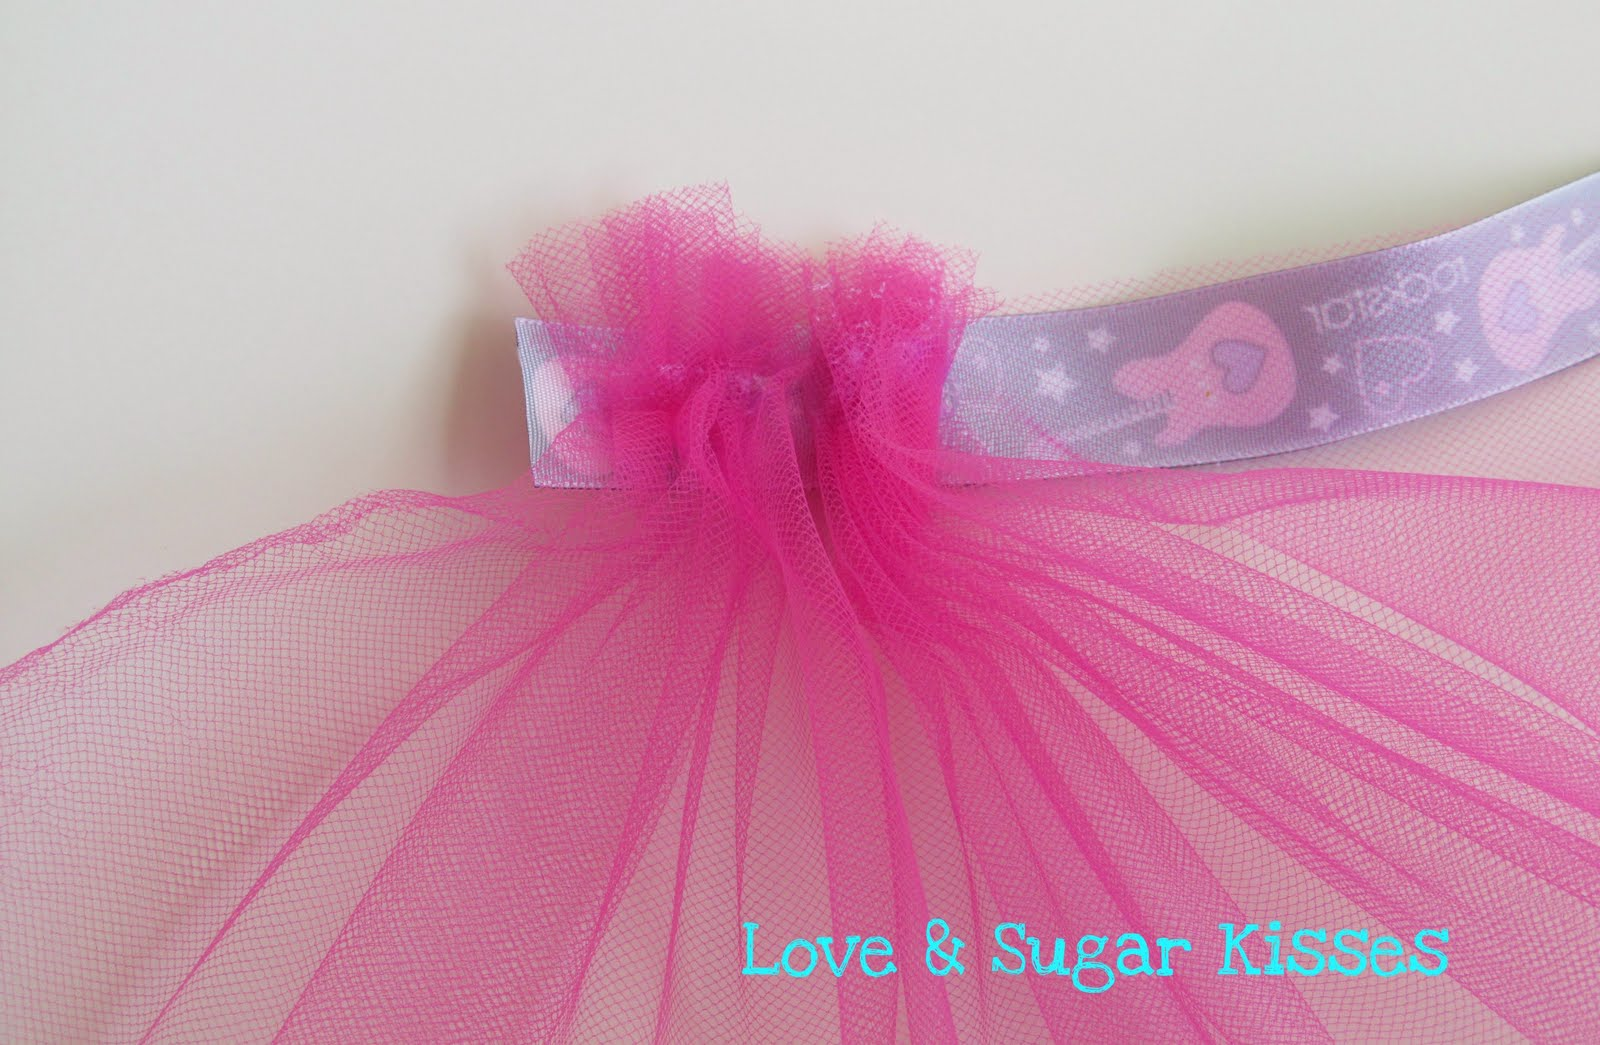 Love sugar kisses diy tutu cake stand be very careful not to burn yourself with the hot glue when it seeps into the tulle i did the first few times until i figured out how to hold it towards solutioingenieria Images